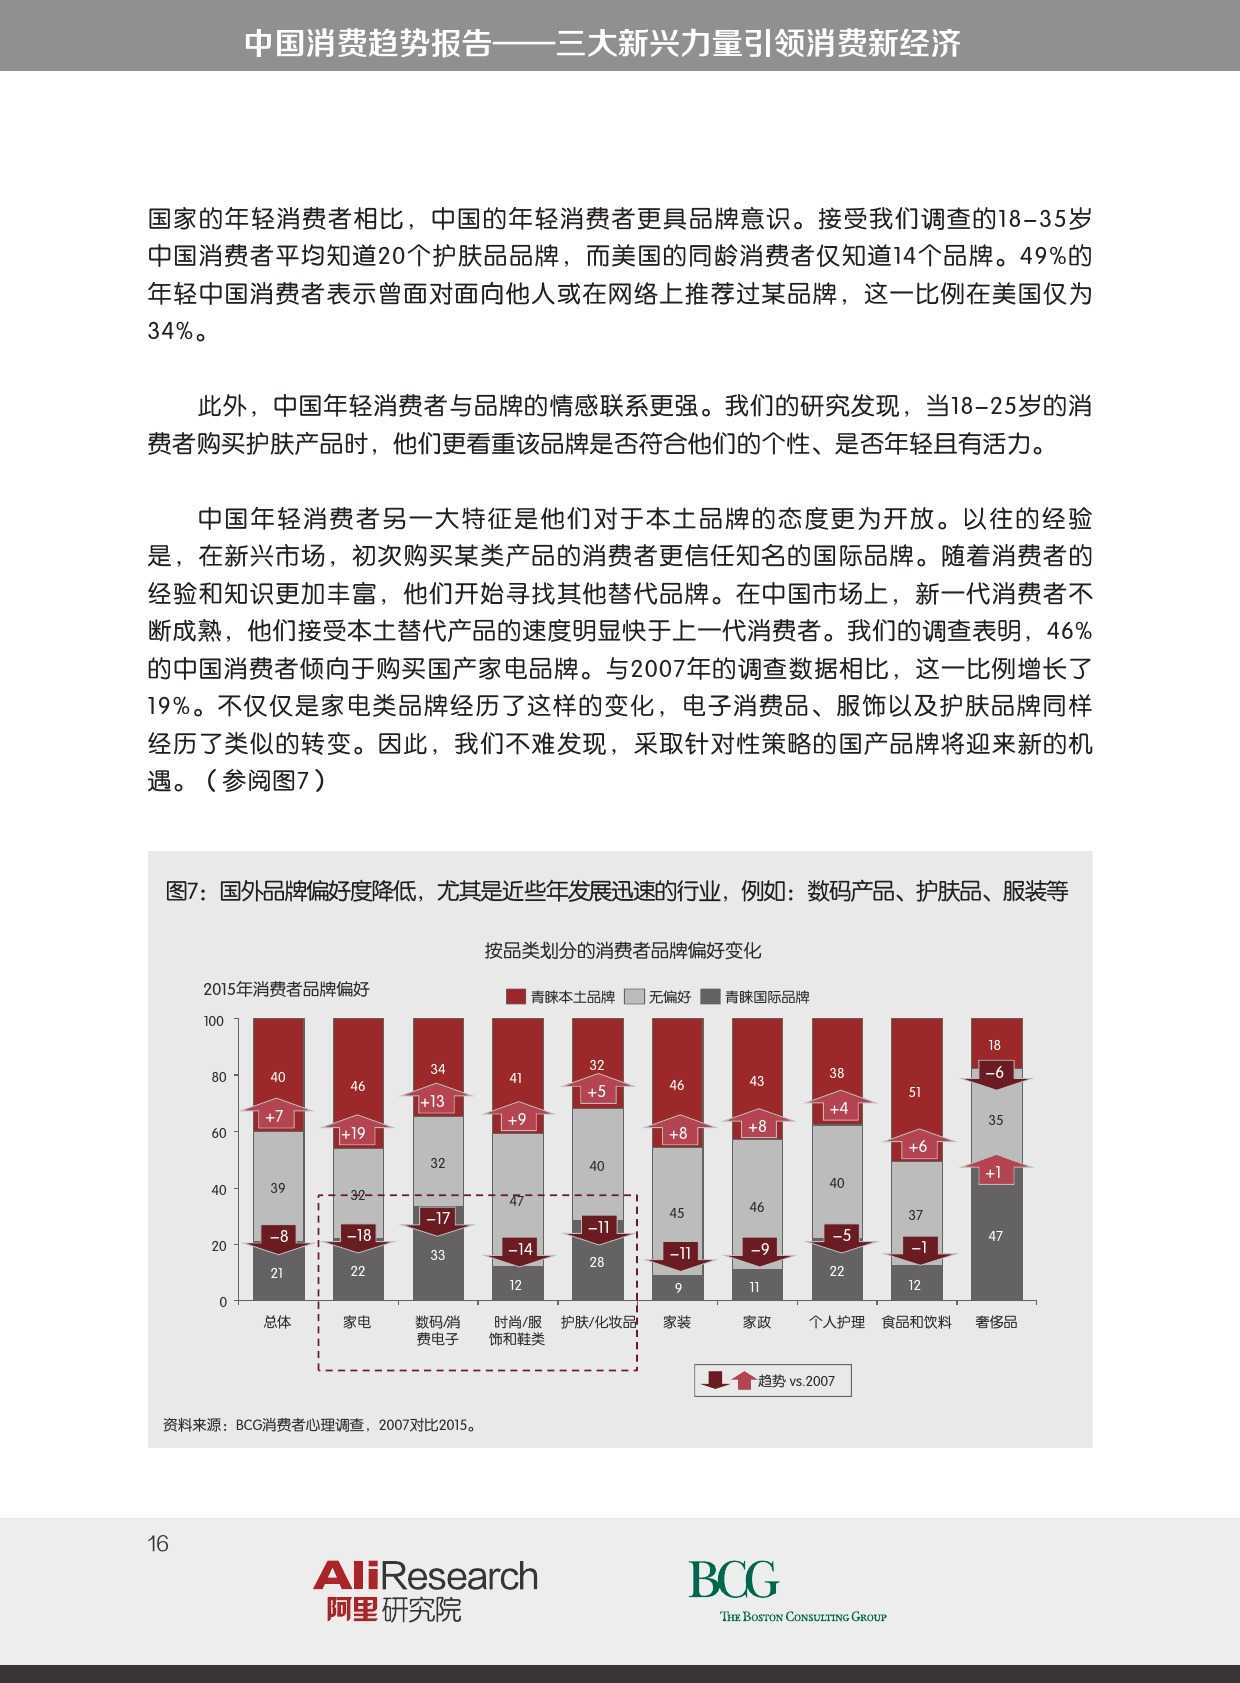 BCG_The_New_China_Playbook_Dec_2015_CHN_000016